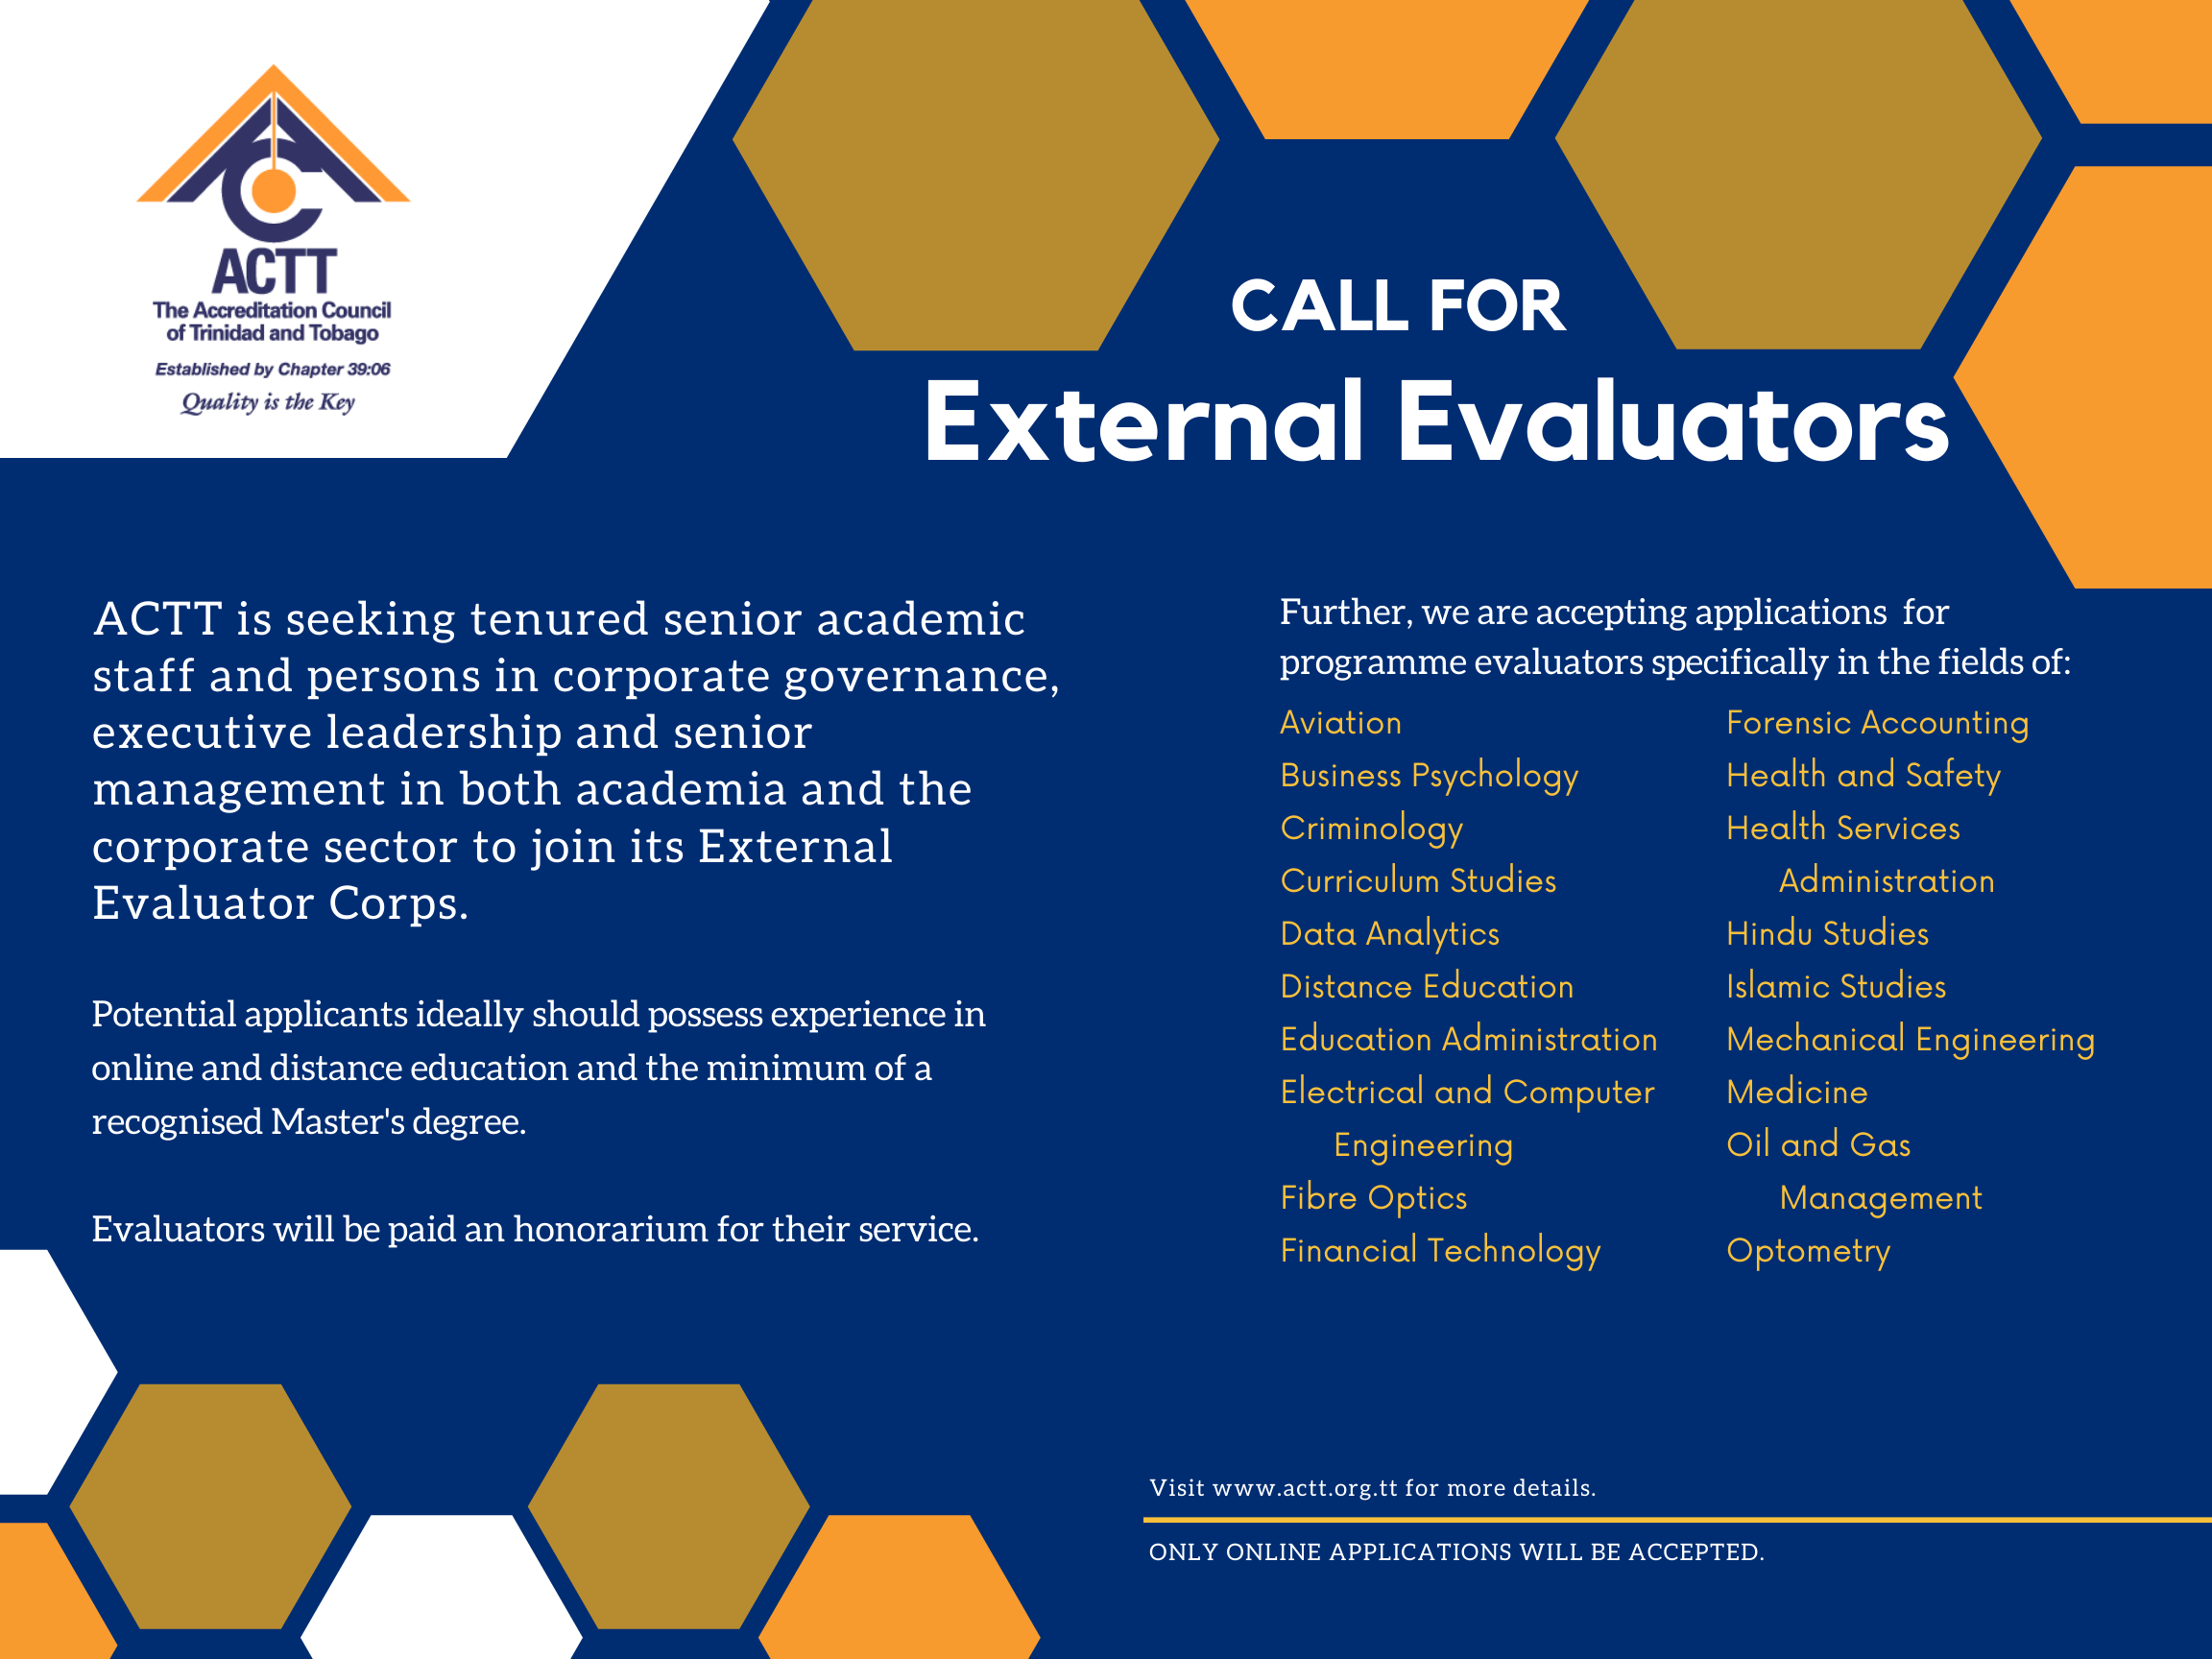 Call for External Evaluators2